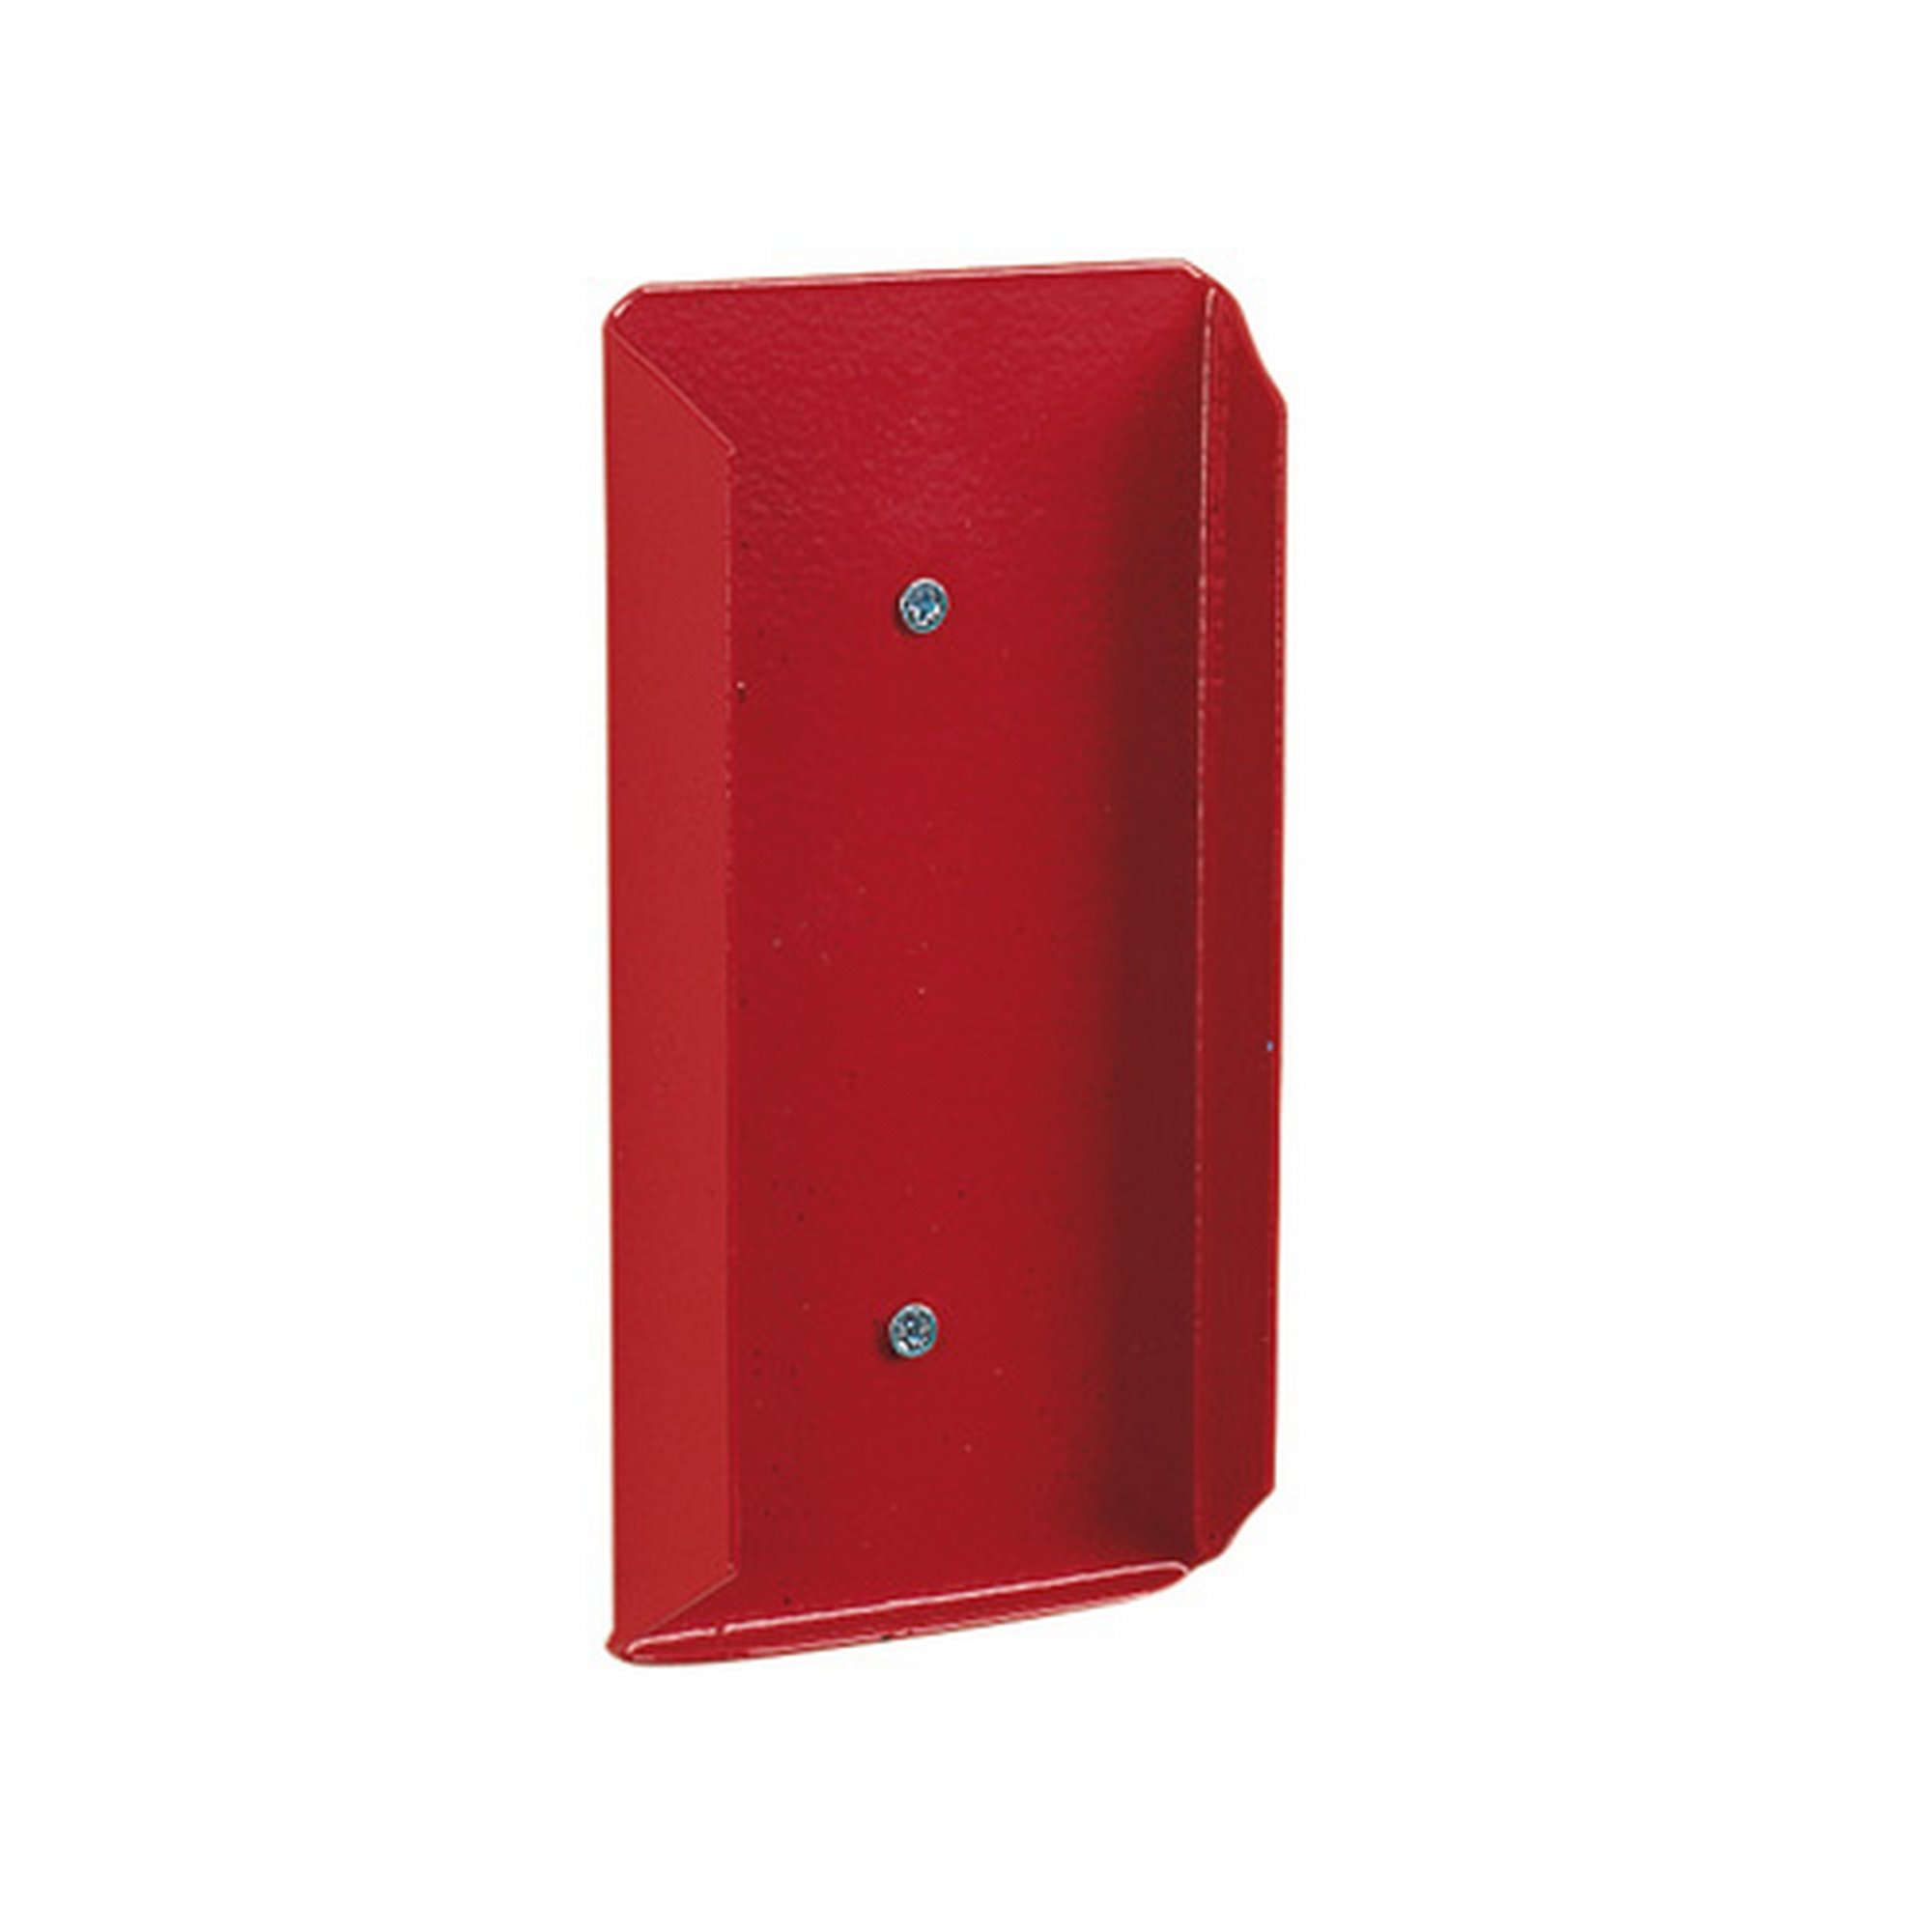 Stubbs Economy Salt Lick Holder (One Size) (Red) by Stubbs